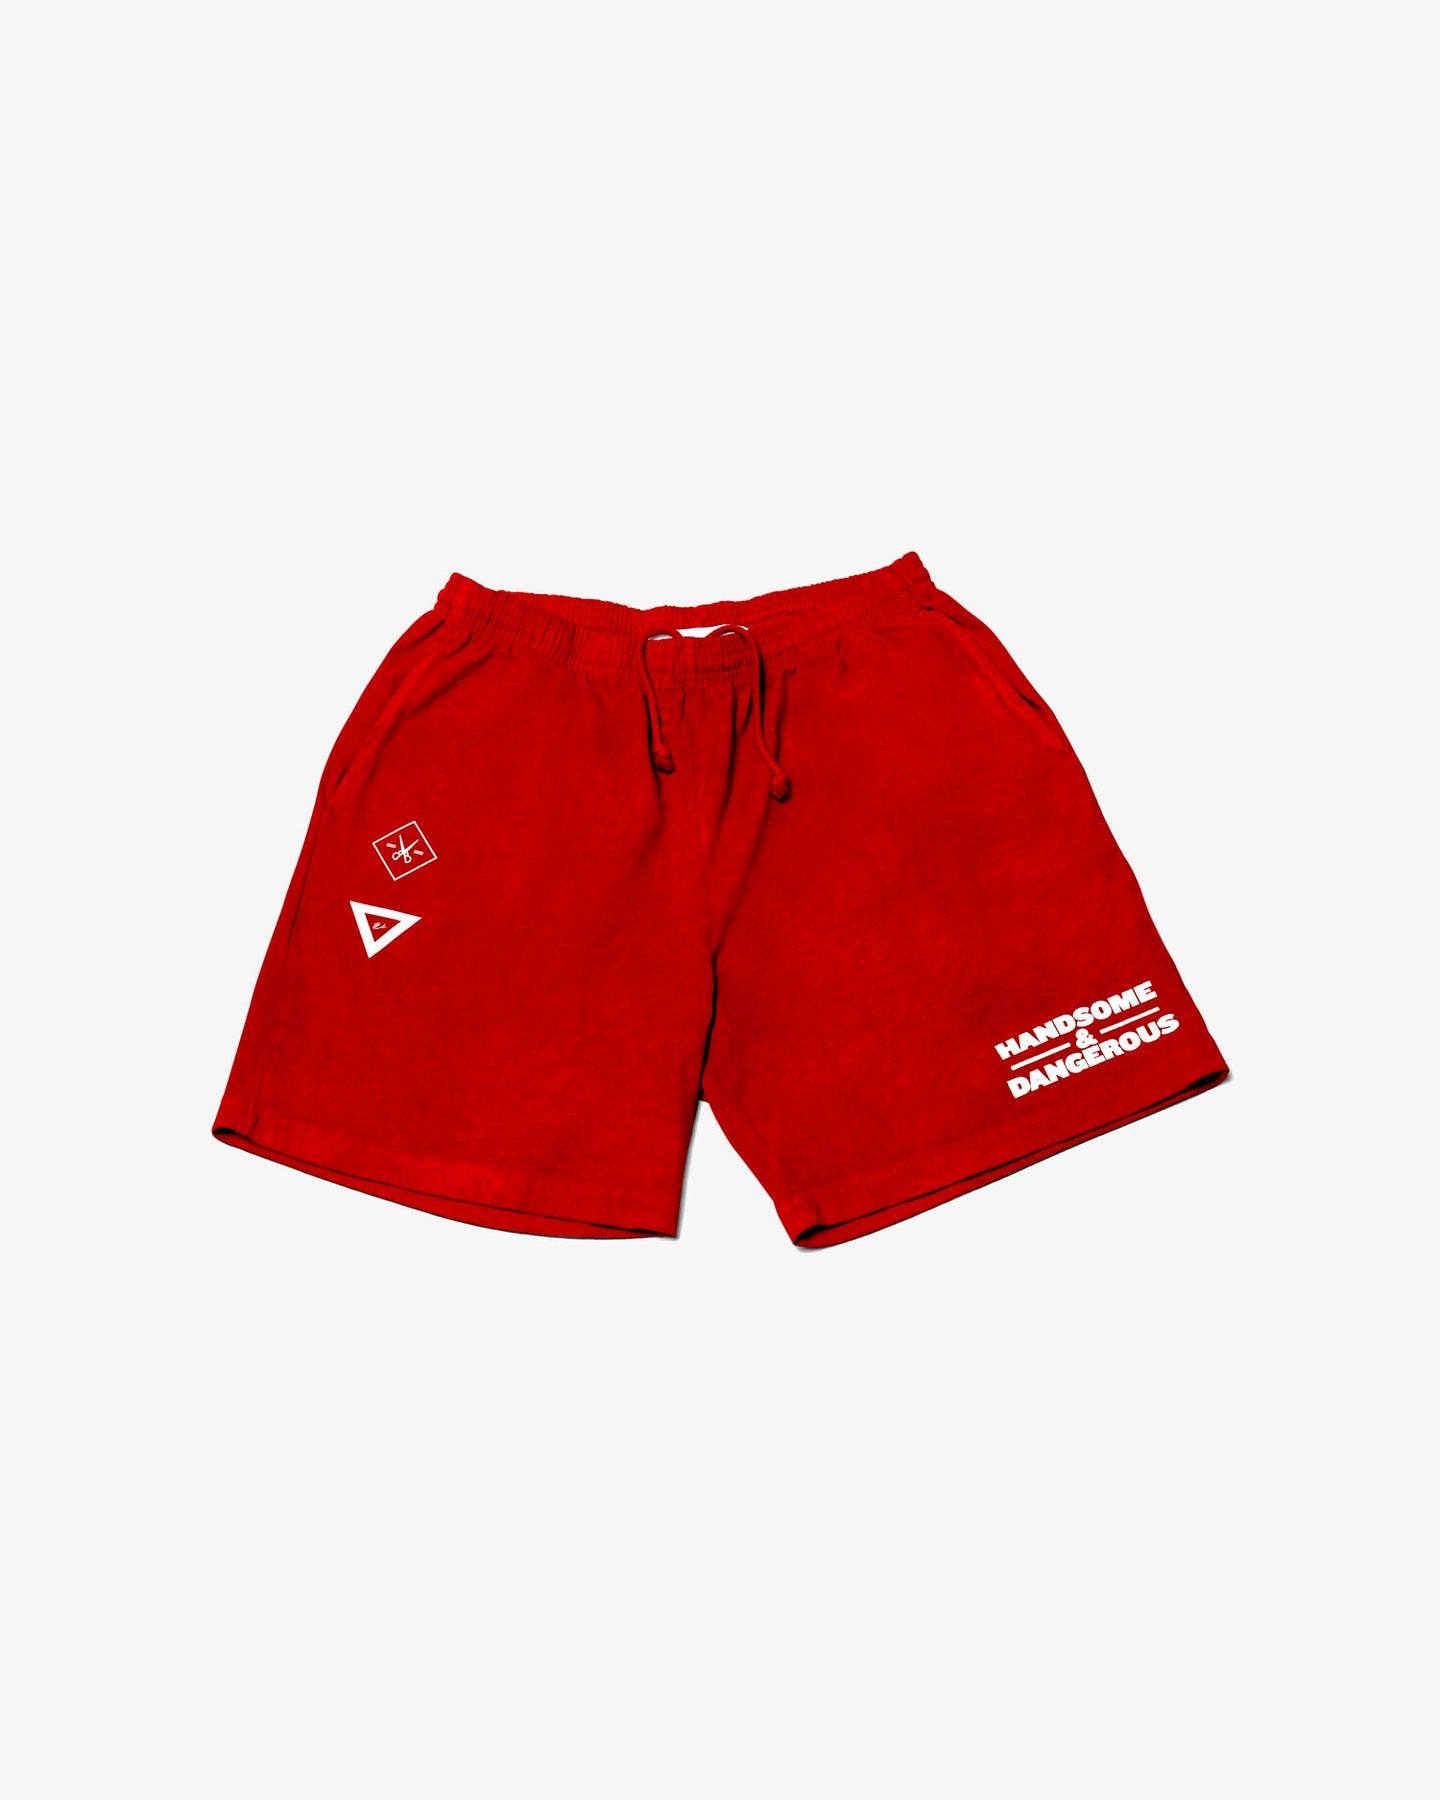 BB X VHTS TERRY SHORTS HANDSOME & DANGEROUS Heavy Jersey Gym Short; ideal for any day - whether you have plans to get up and workout or just lounge around. These shorts are part of our garment dye line, which is always custom dyed, shrink-free and sewn with 100% USA-grown cotton.  • Unisex • Made in U.S.A • 8.5 oz/yd2/ 270 g/m2 • 12/1 Open-End Cotton • Elastic Waistband with Drawstring • Side Pockets • Shrink-Free  100% Cotton  vhts europe